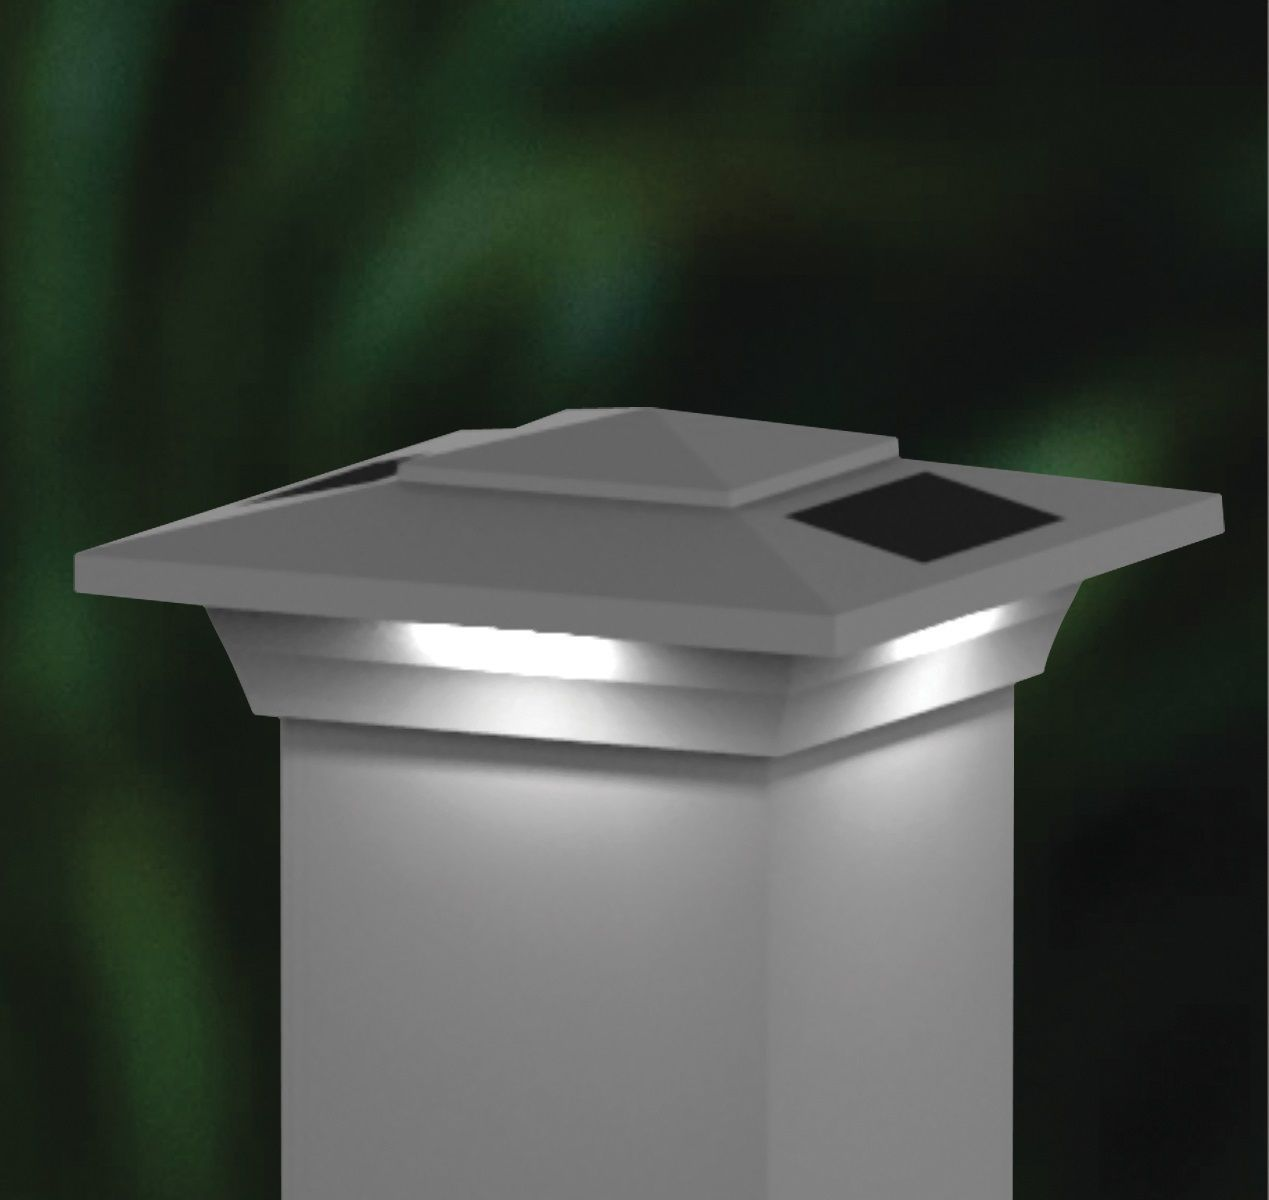 Solar Deck U0026 Fence Post Cap Lights | Set Of 2 White 4x4 Low Profile Great Pictures